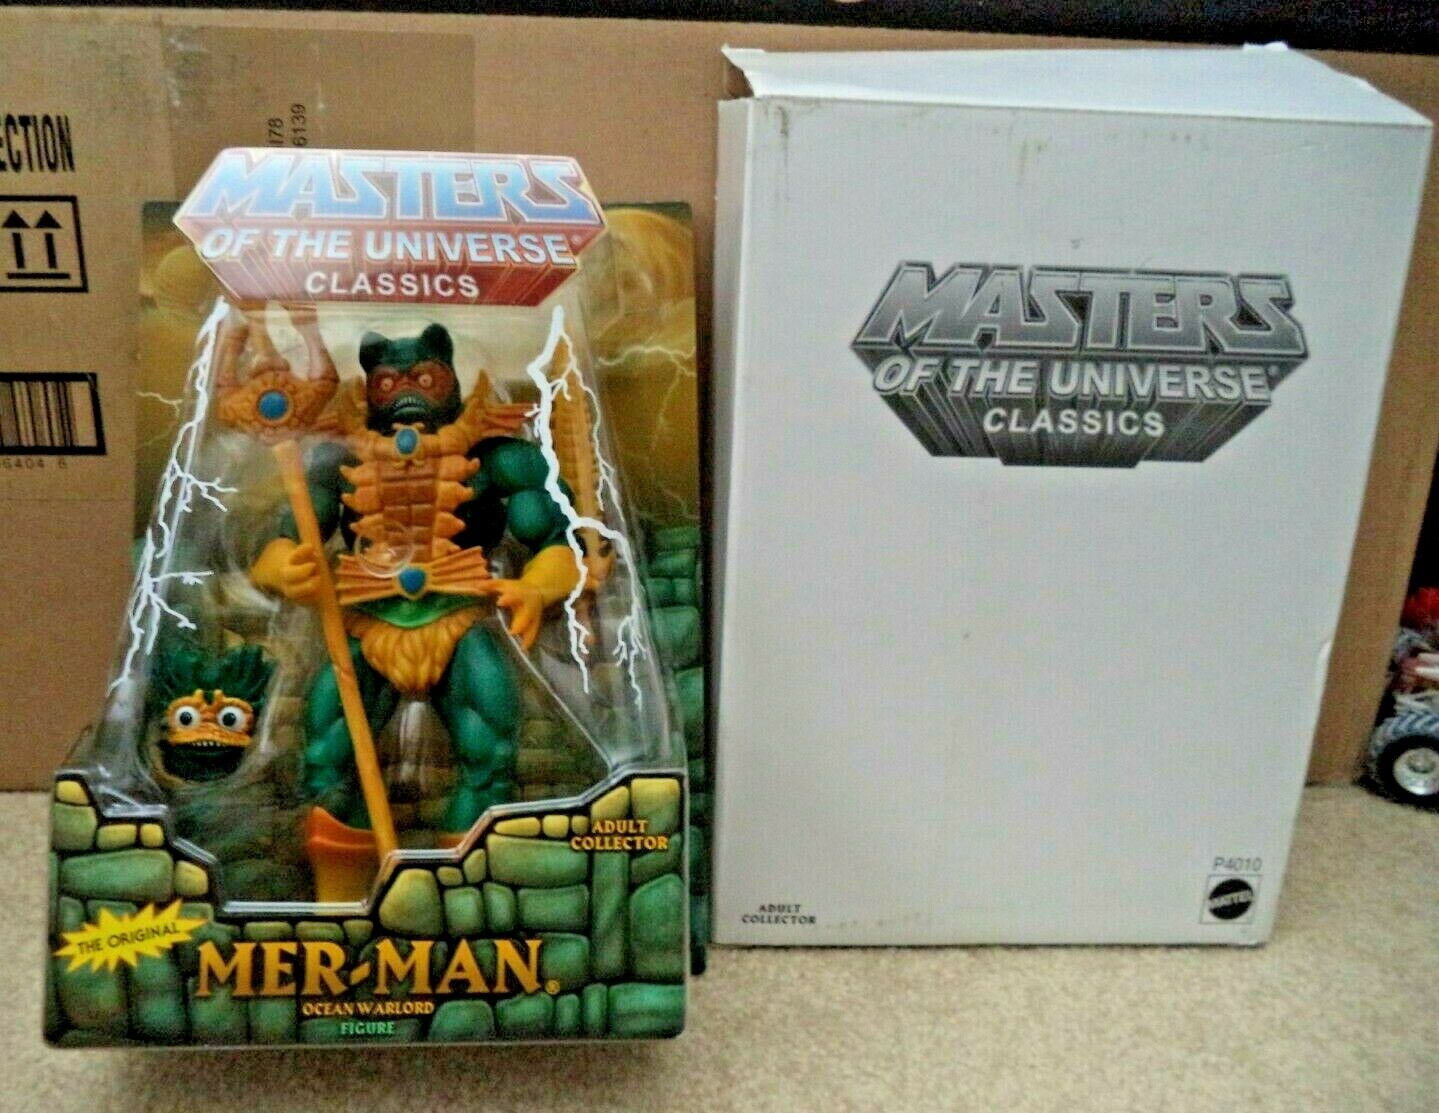 He-uomo Masters of the Universe classeeics  Meruomo mer-uomo ocean warlord P4010 nu  colorways incredibili